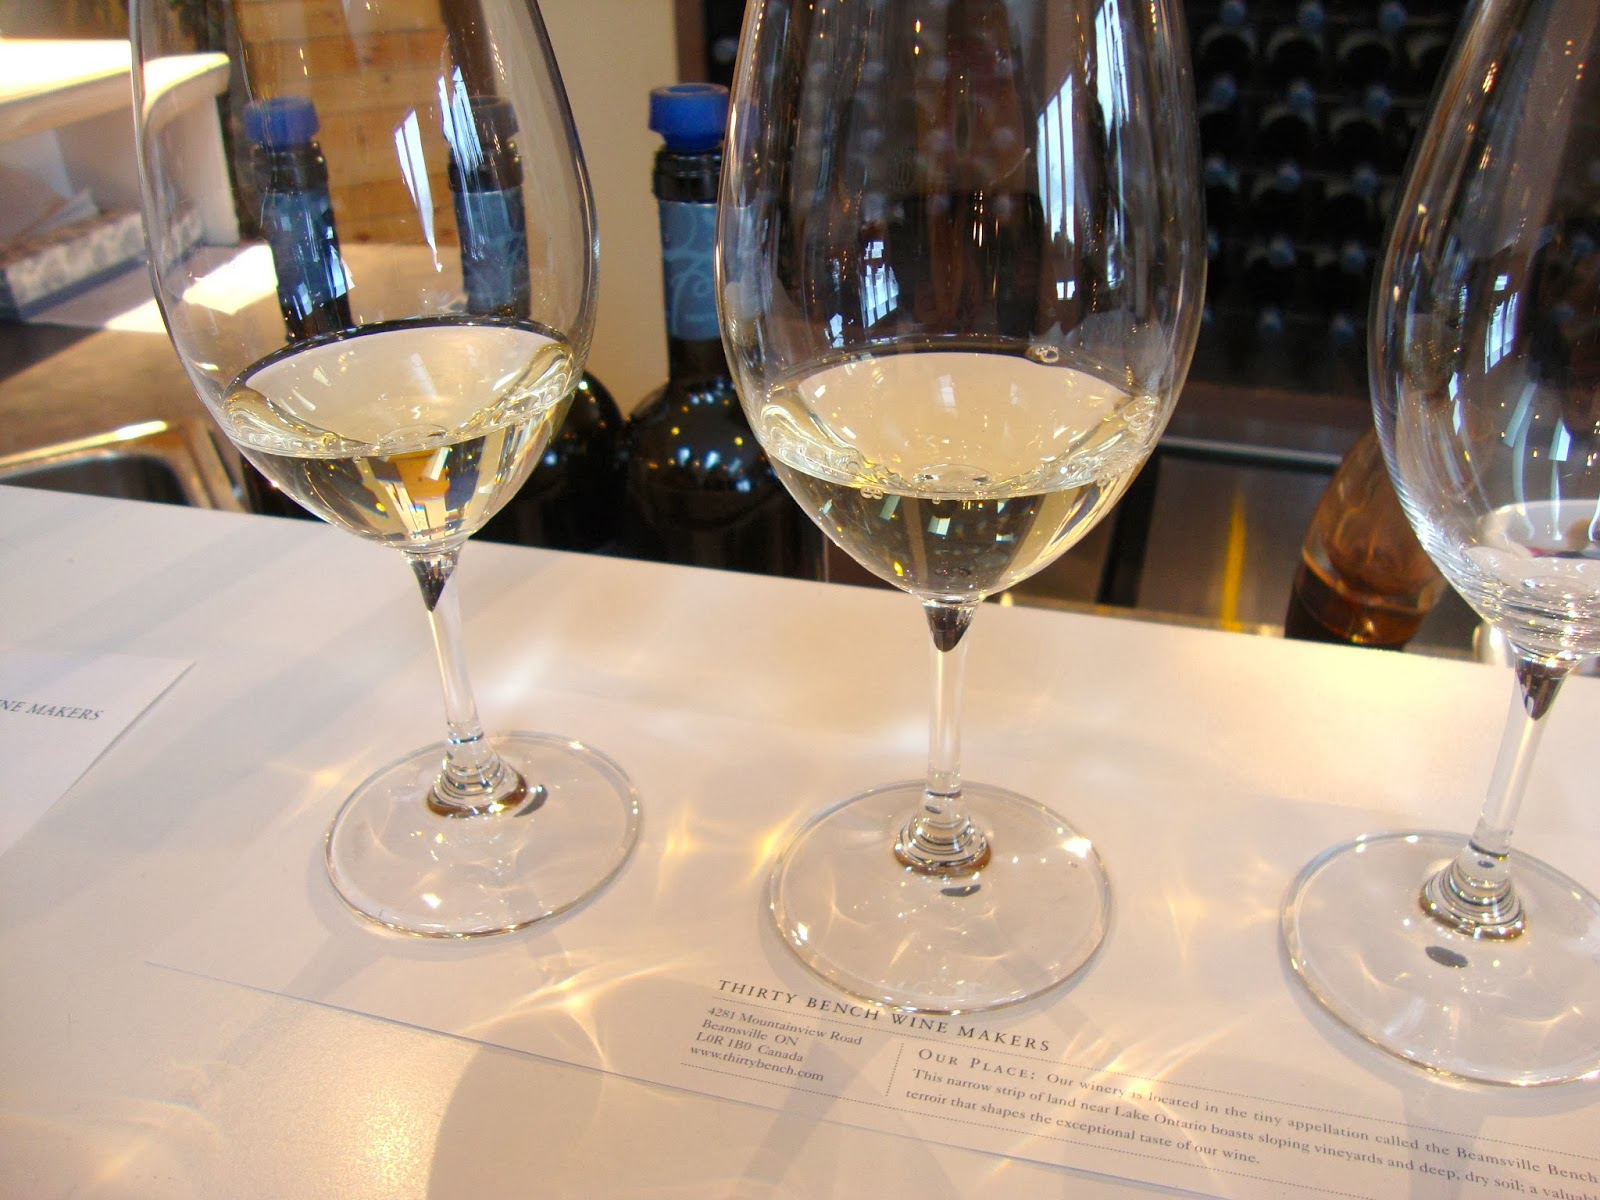 Thirty Bench Riesling